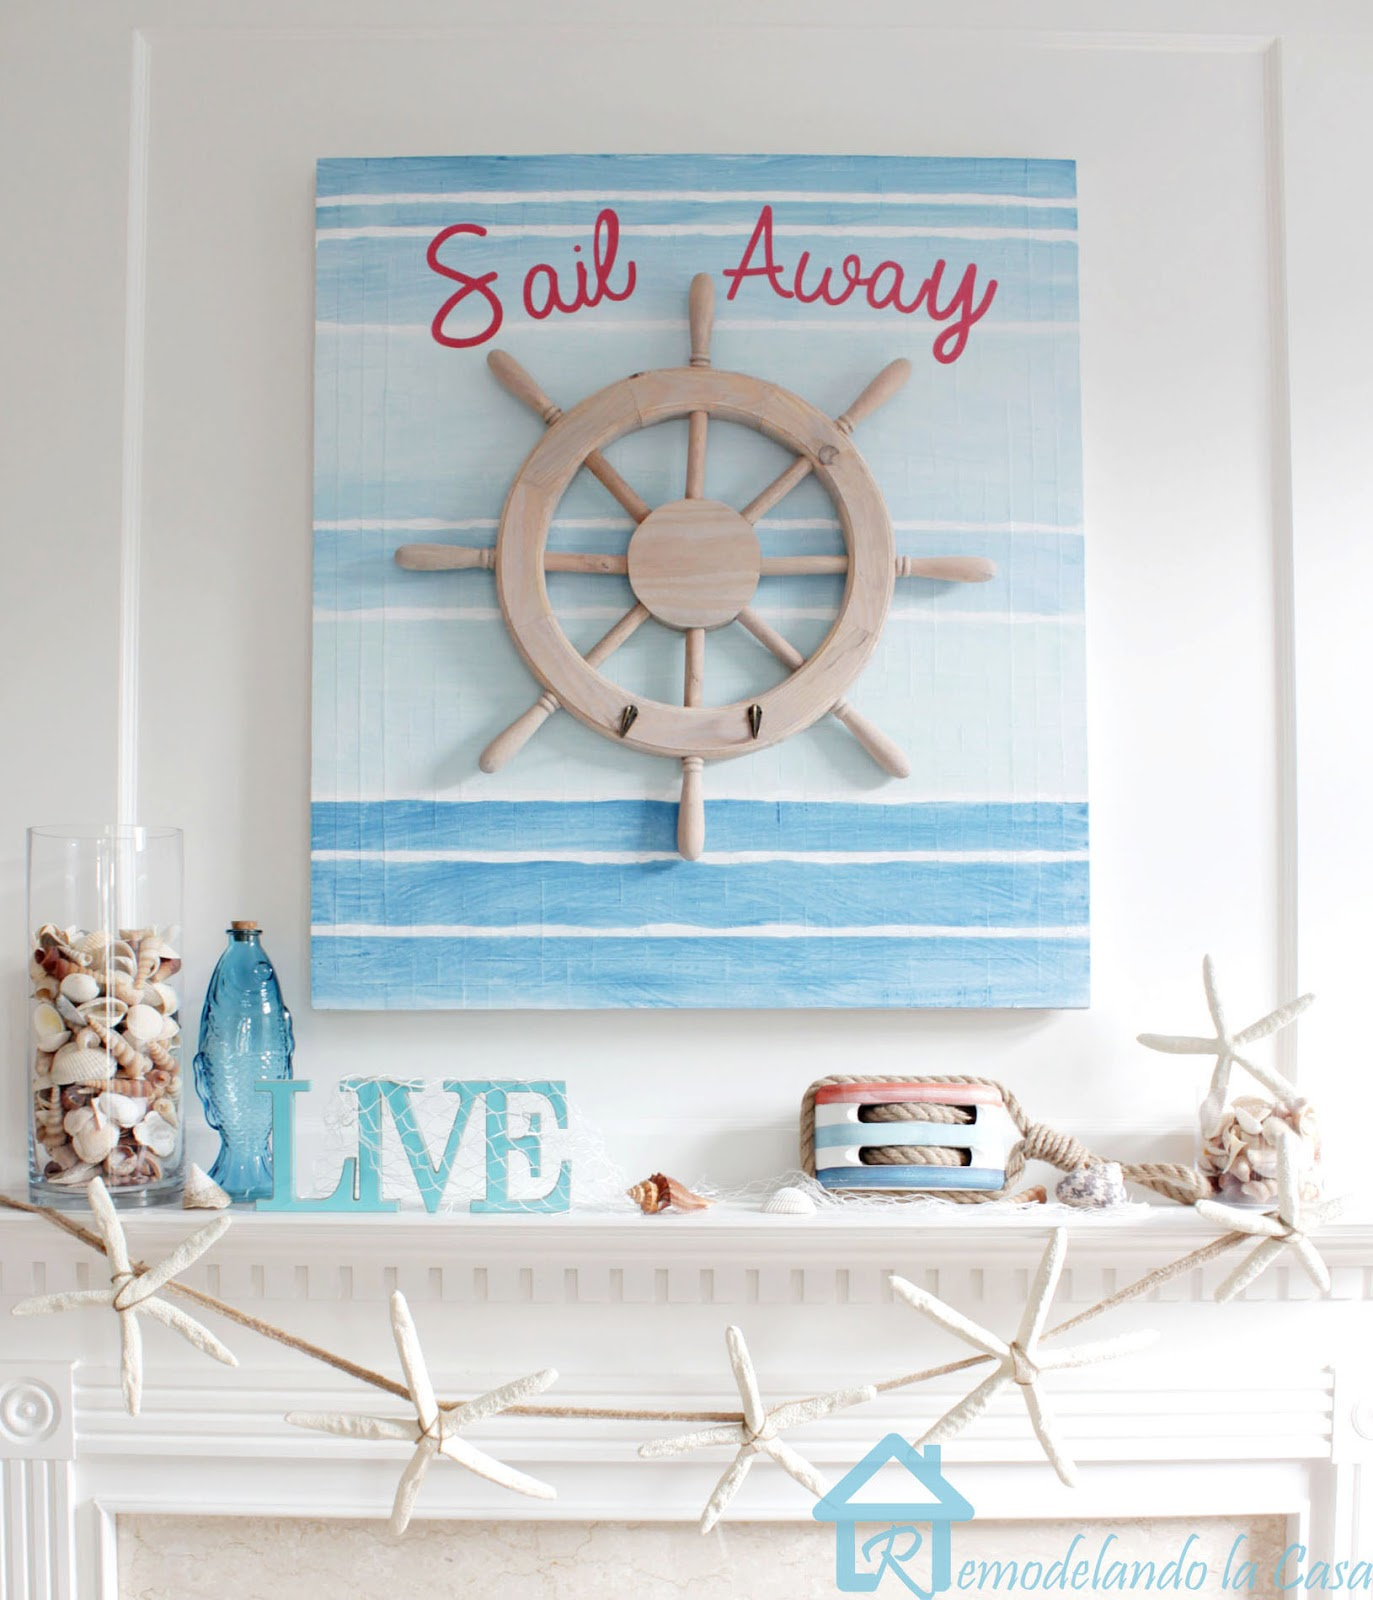 36 Breezy Beach Inspired Diy Home Decorating Ideas: DIY Home Decor Ideas